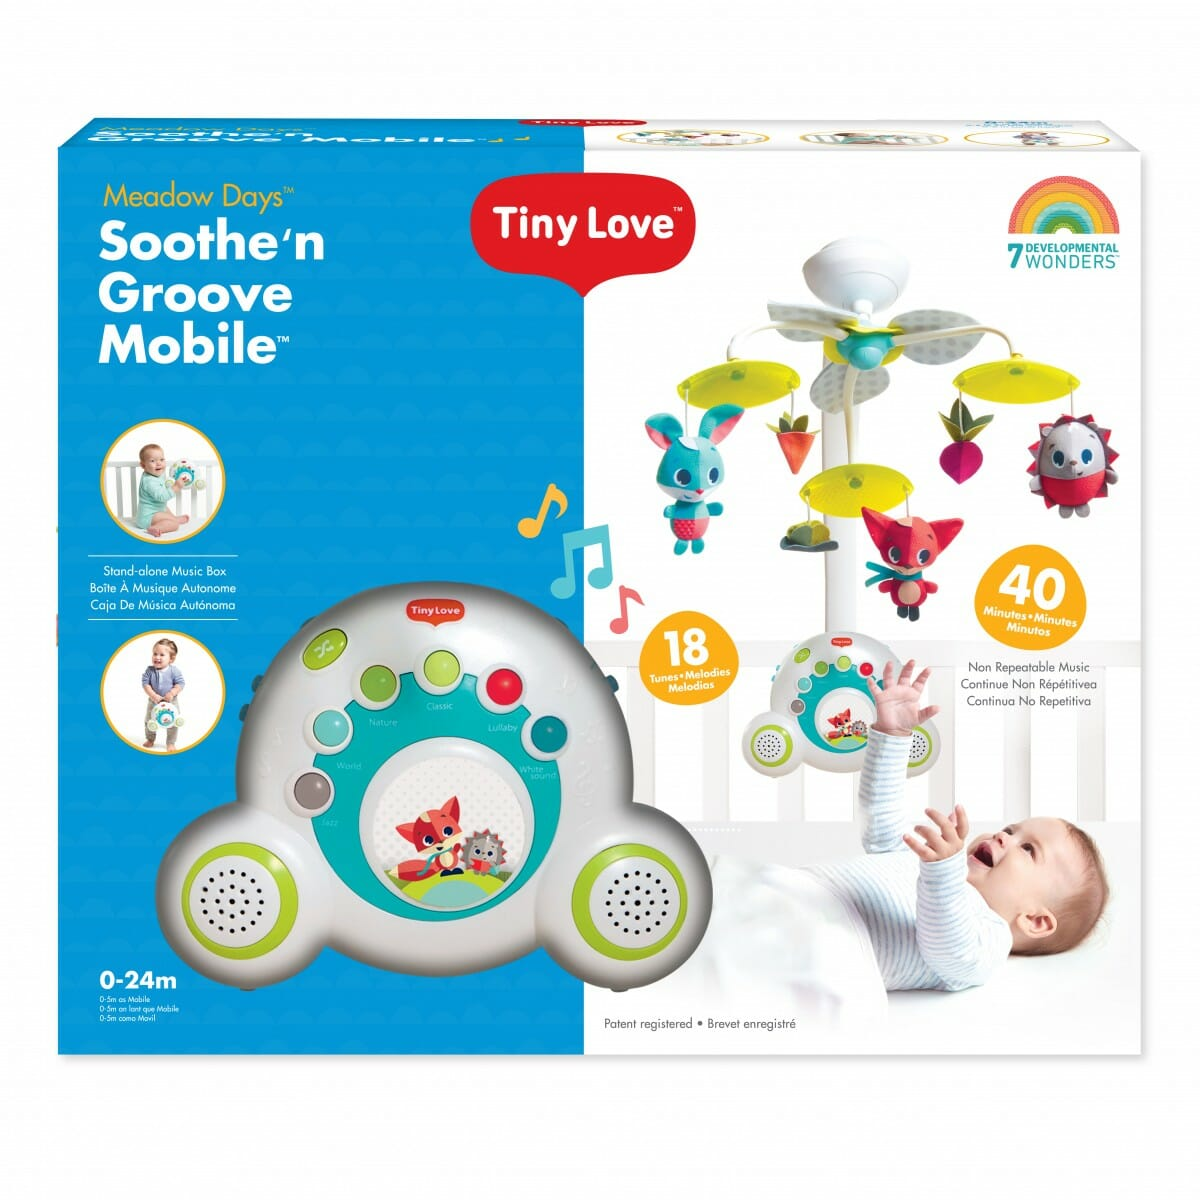 Tiny Love Sooth n Groove Meadow Days packaging